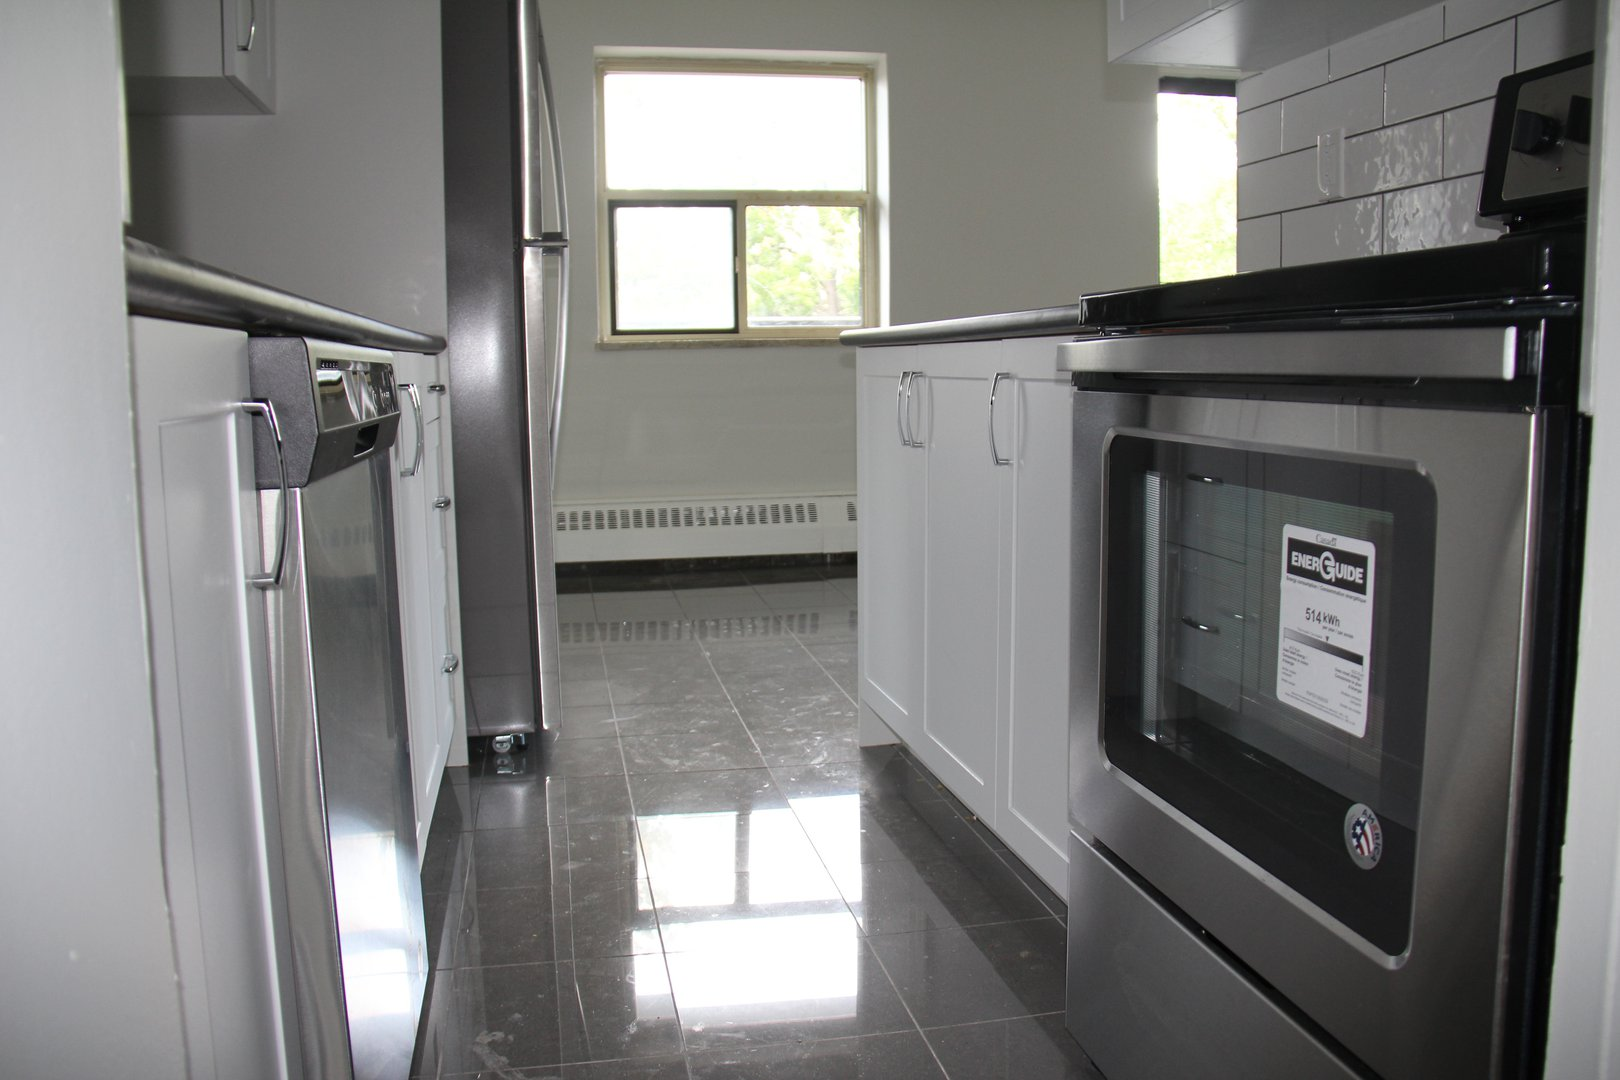 Apartment for rent at 141 Main St S, Brampton, ON. This is the bathroom with natural light, stainless steel and tile floor.